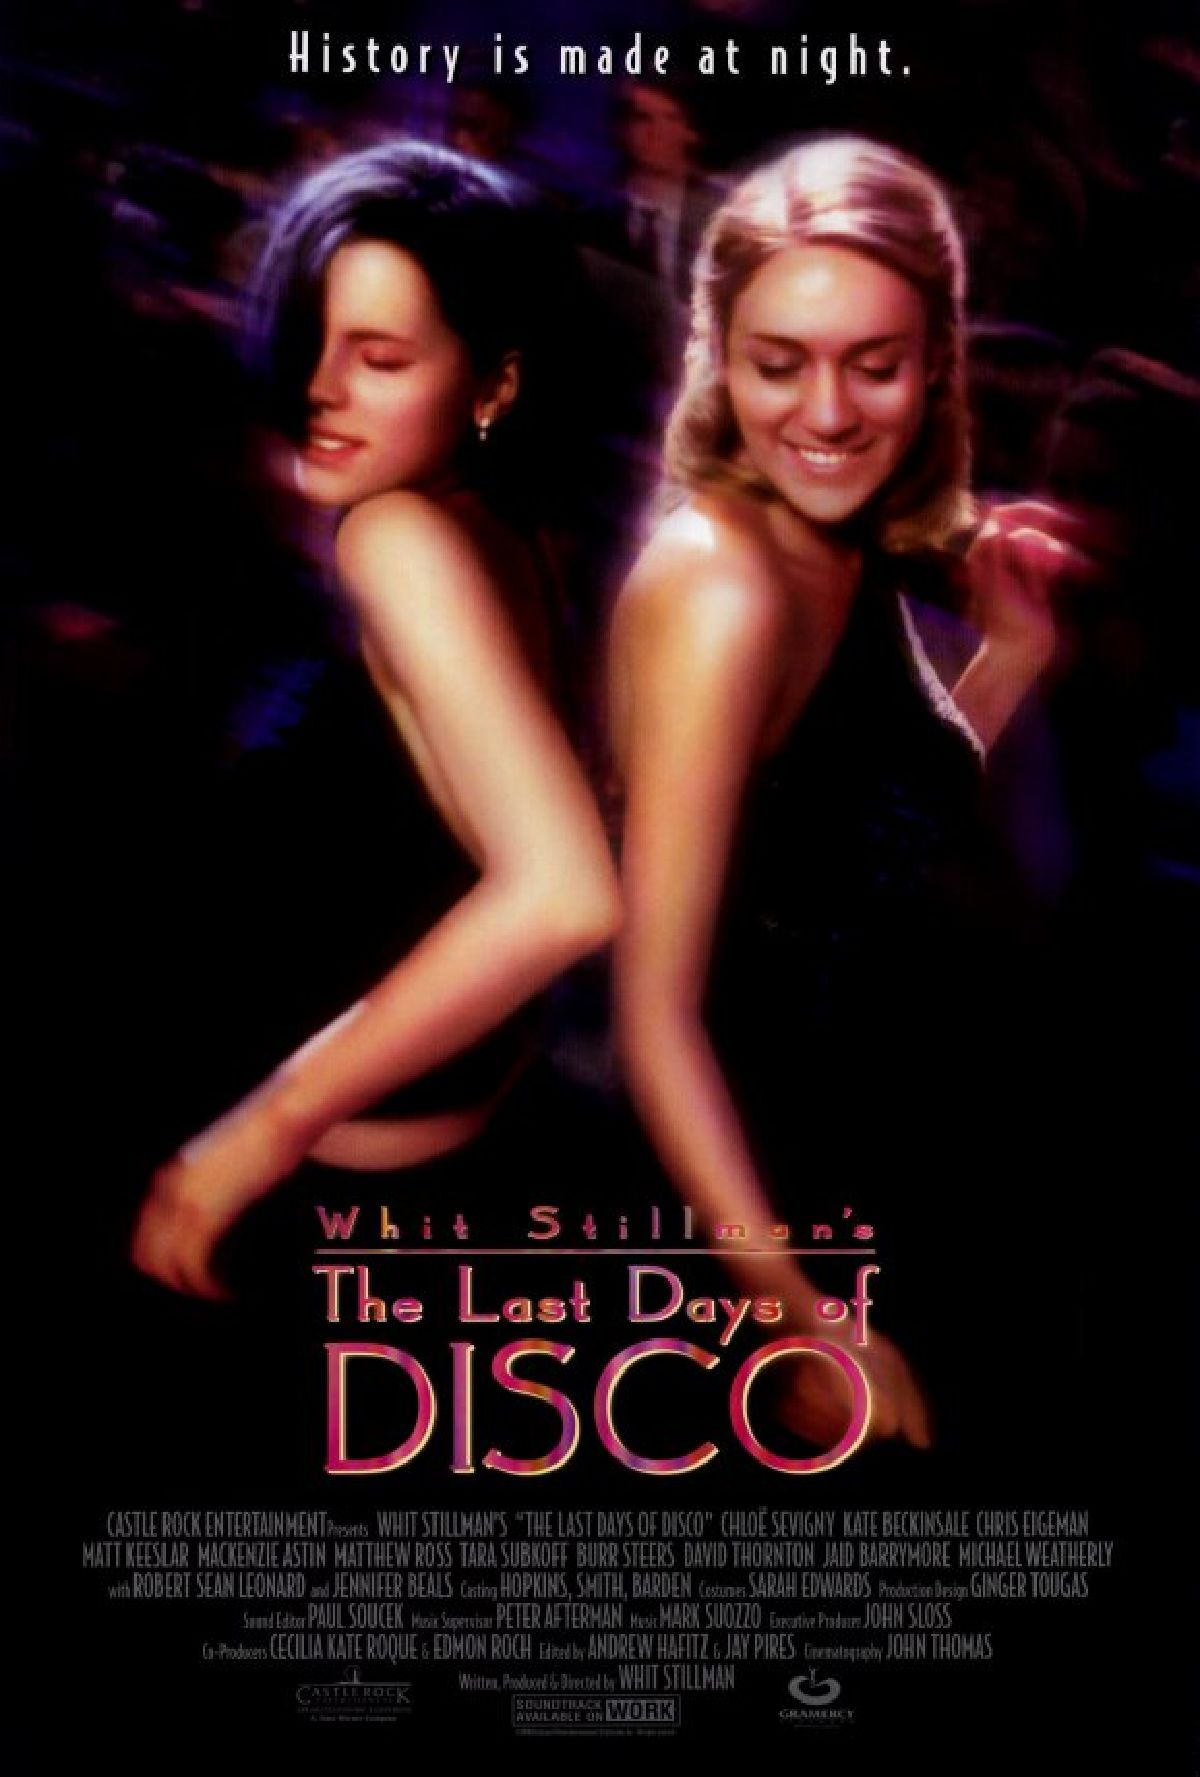 'The Last Days Of Disco' movie poster